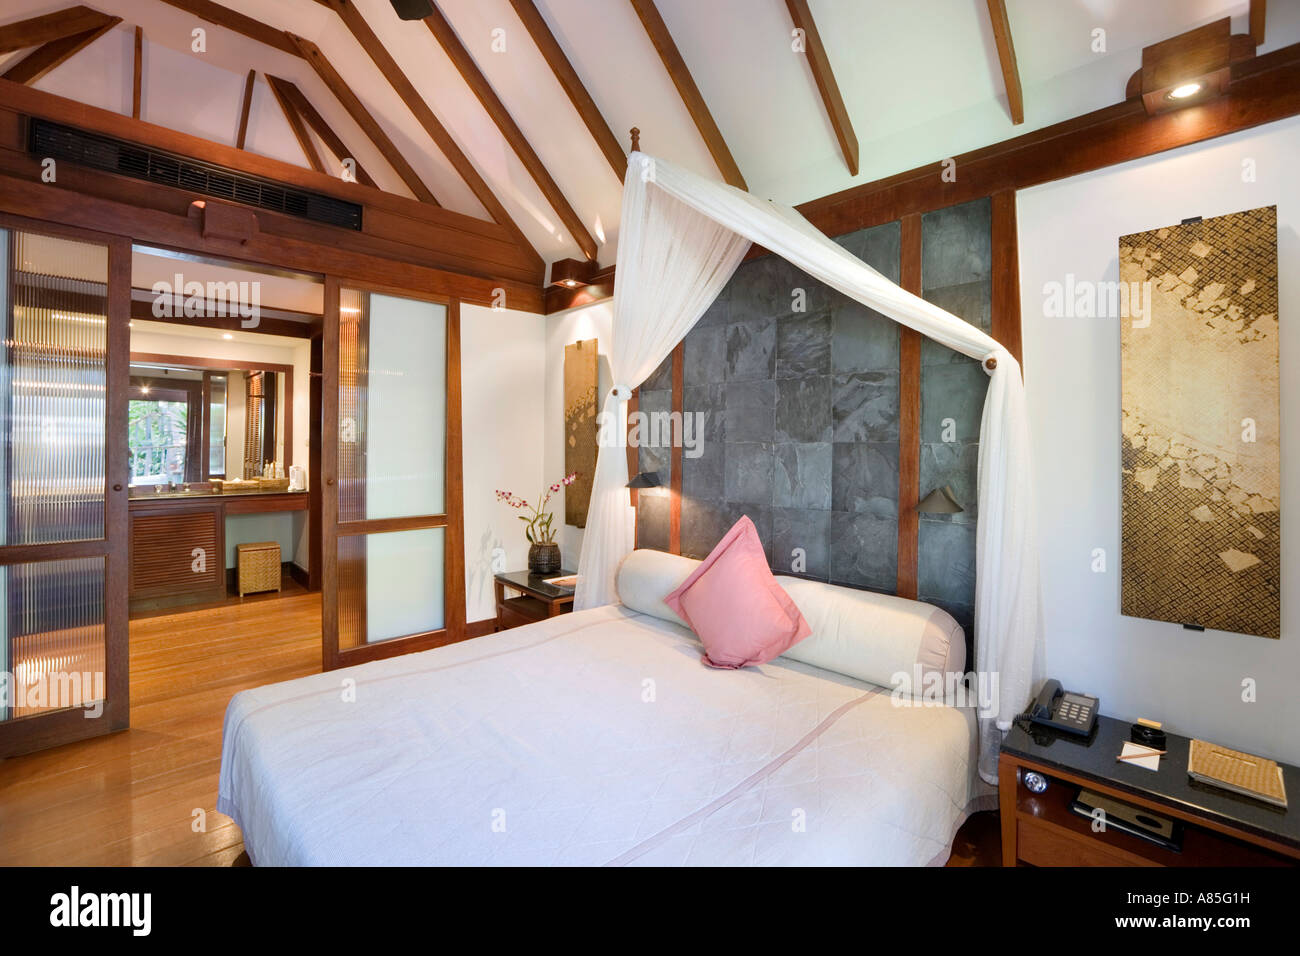 Luxury Hotel Bedroom Standard Room At The Chedi Phuket Hotel Stock